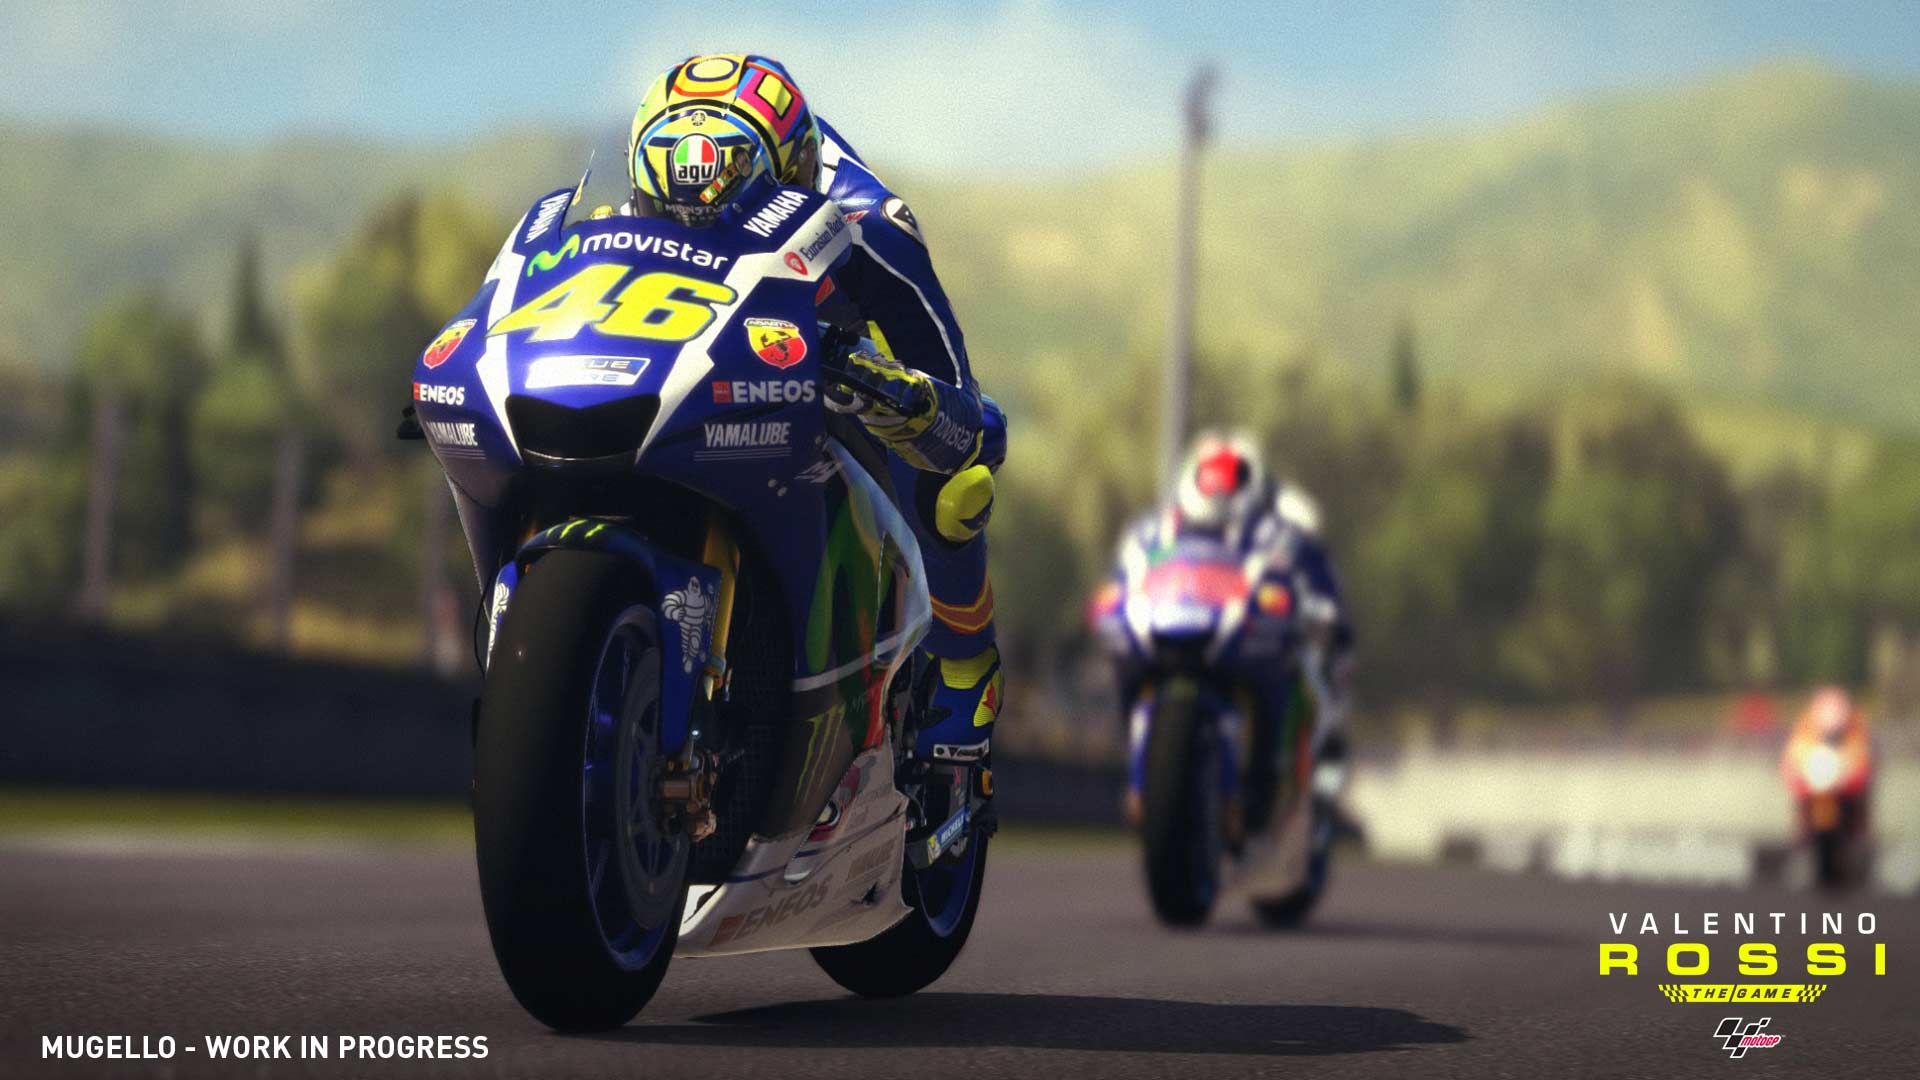 Valentino Rossi The Game - VGProfessional Review (1)